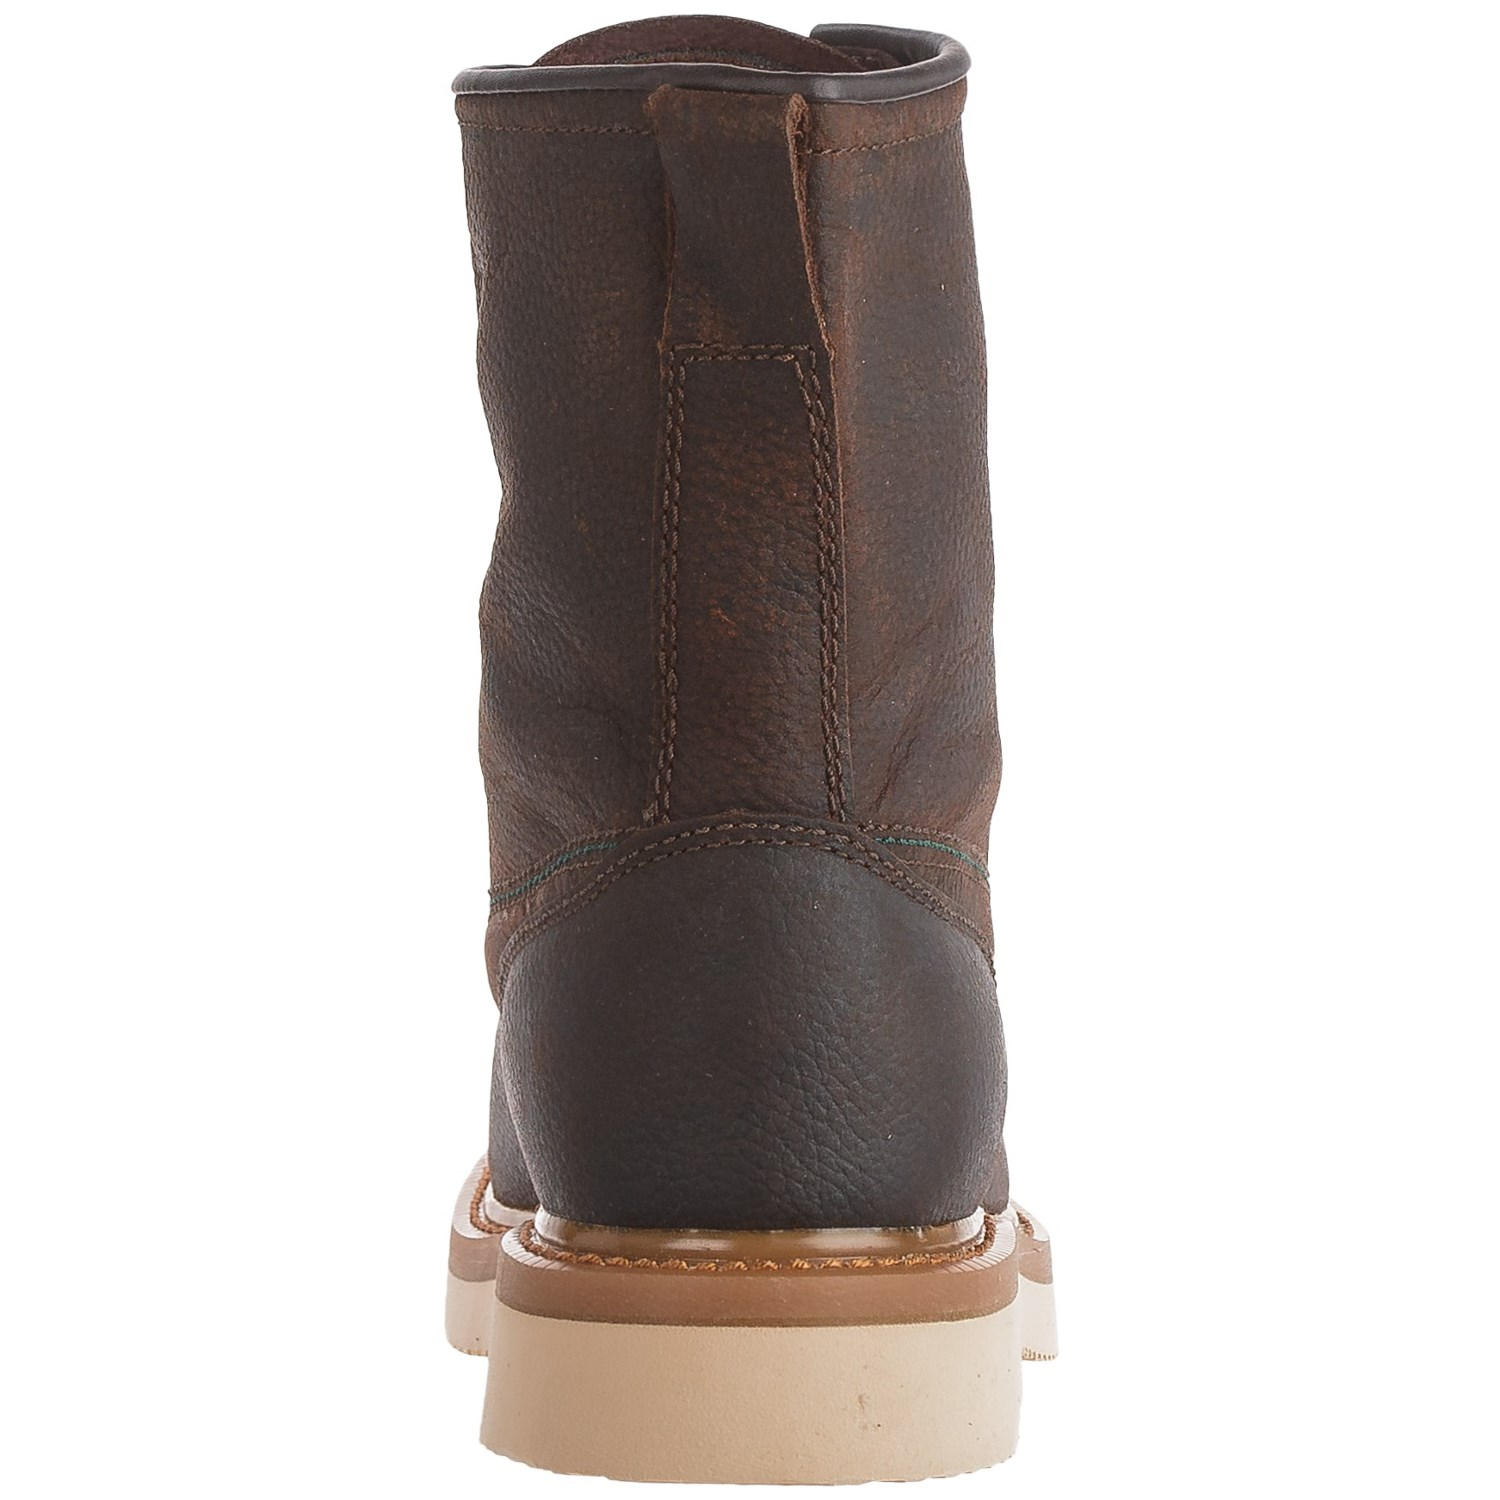 Justin leather work gloves - Justin Boots Flakeboard Work Boots Leather For Men